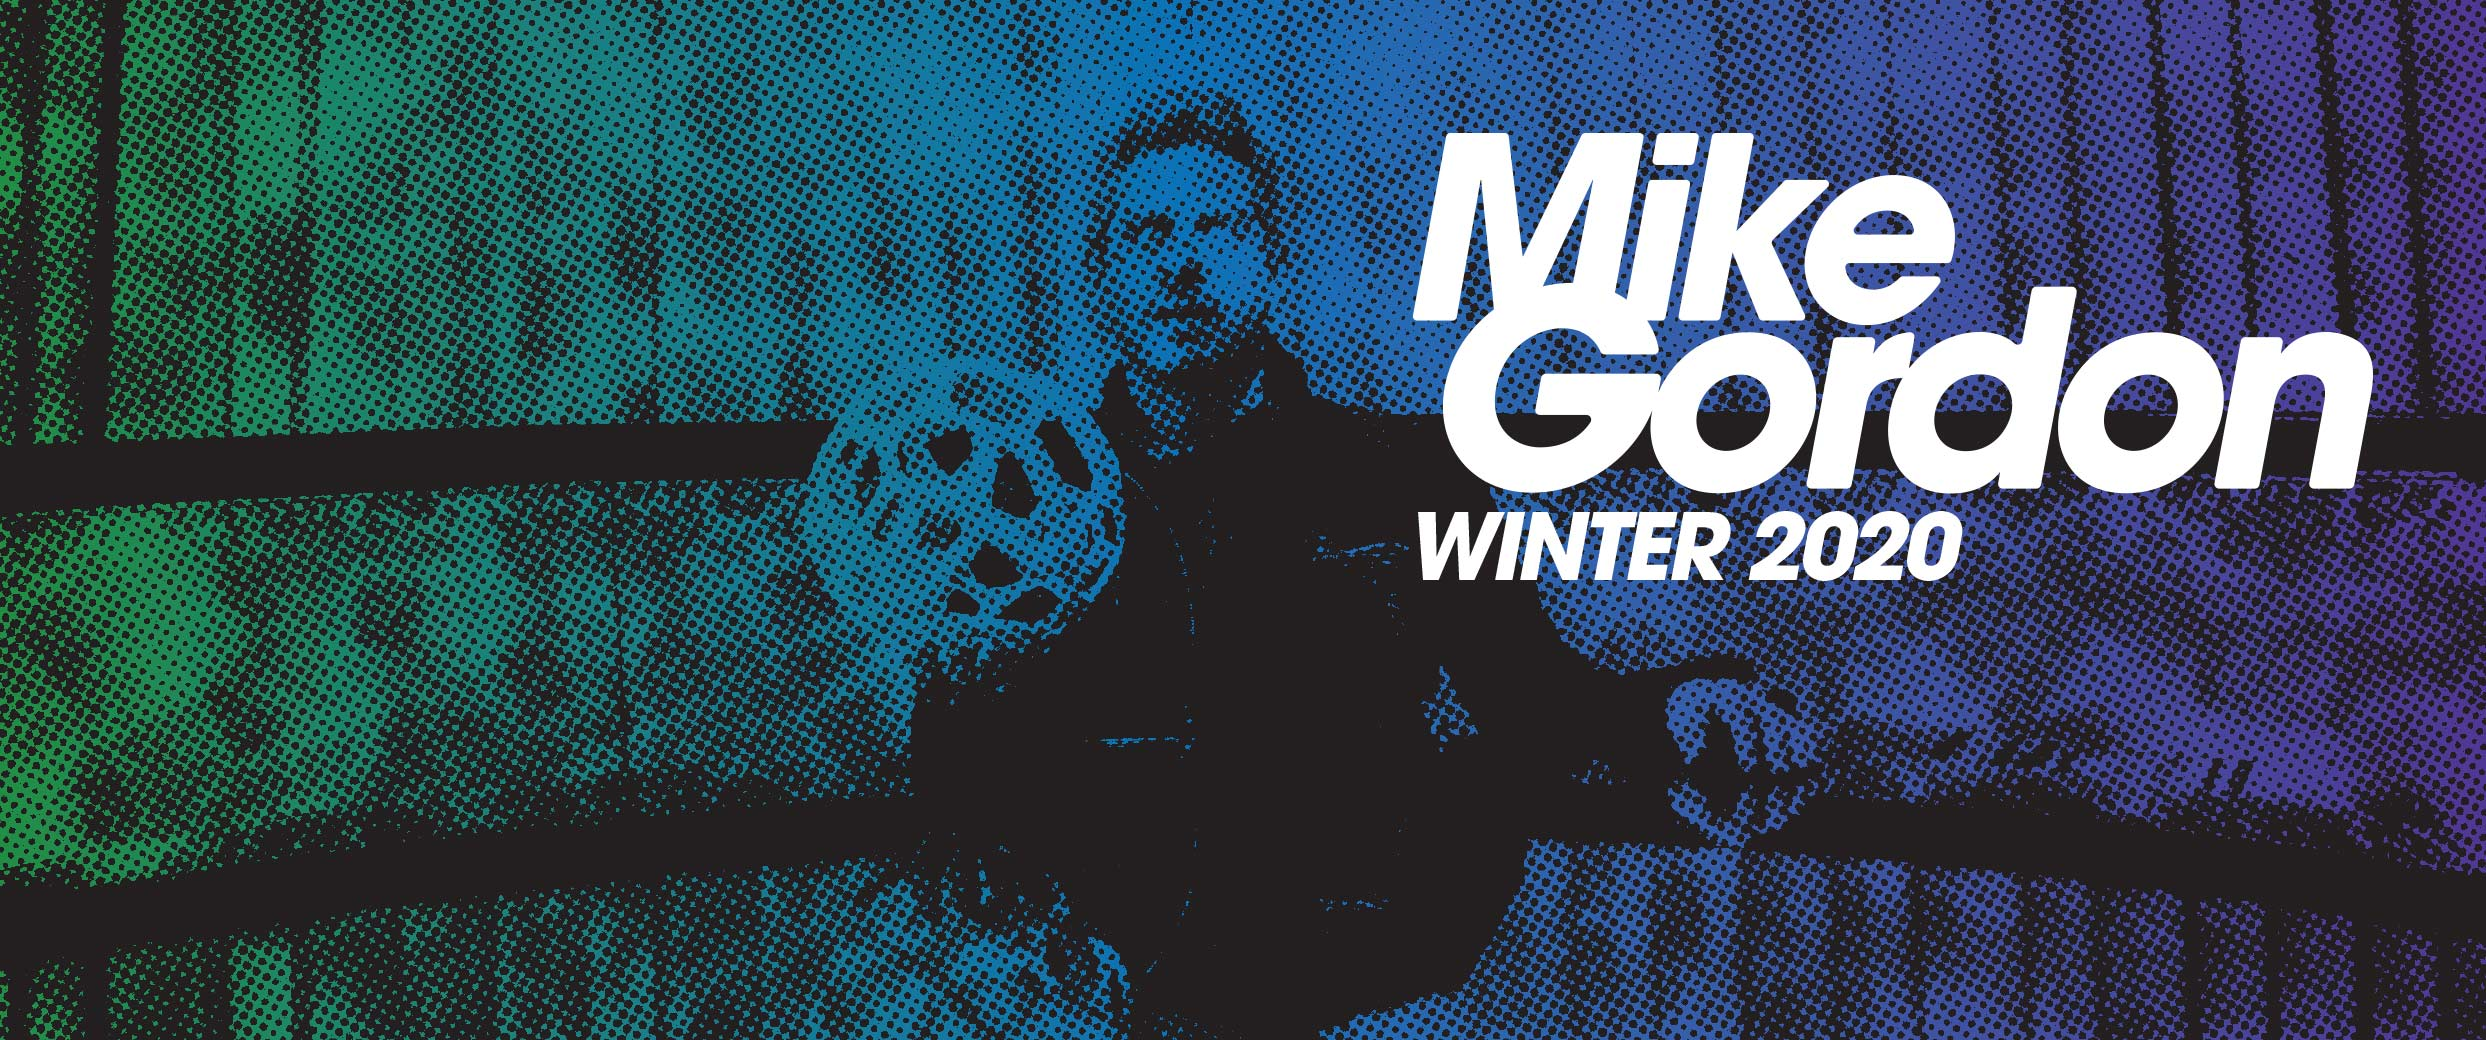 Mike Gordon 2020 Winter Tour Begins Next Week